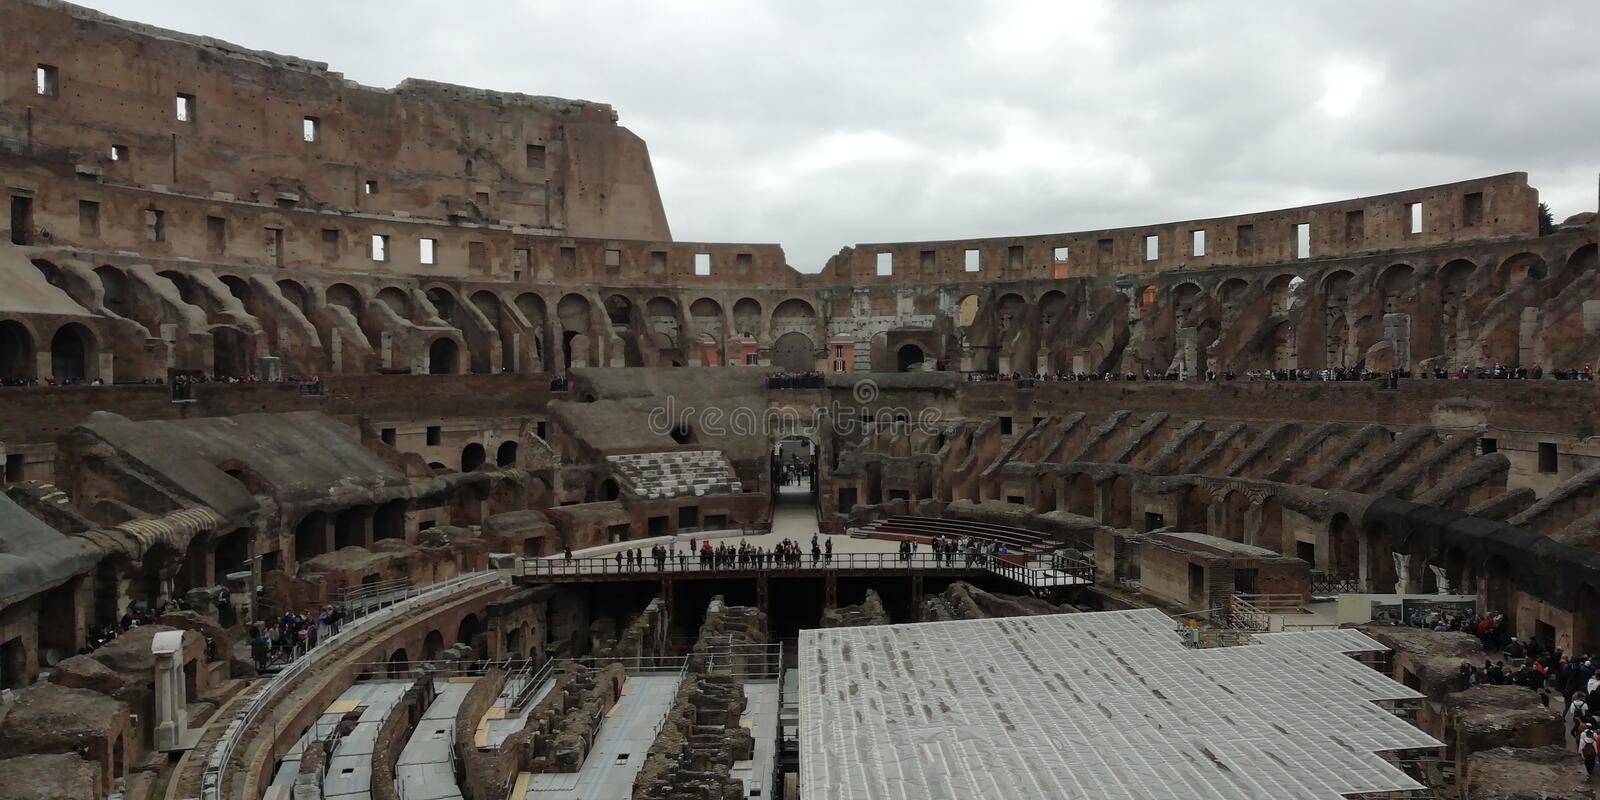 Inside view of the Colosseum, Rome, Italy stock photo